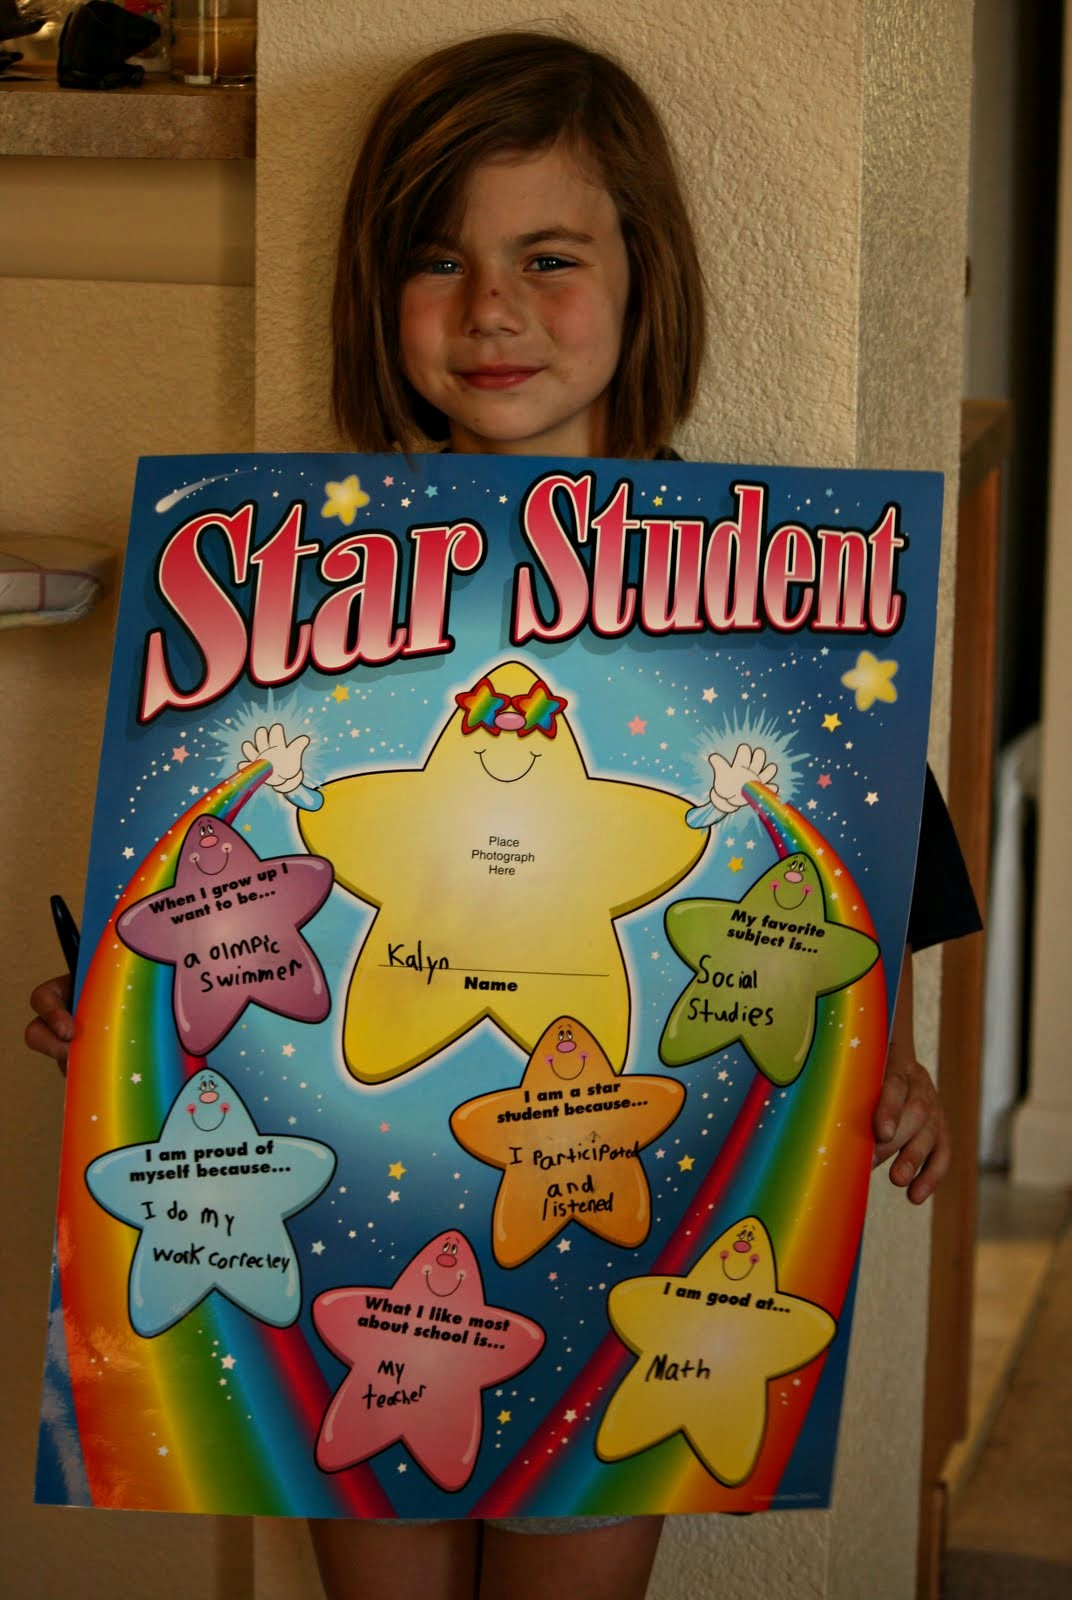 Student Of the Week Posters Unique Just Sayin 08 01 2010 09 01 2010